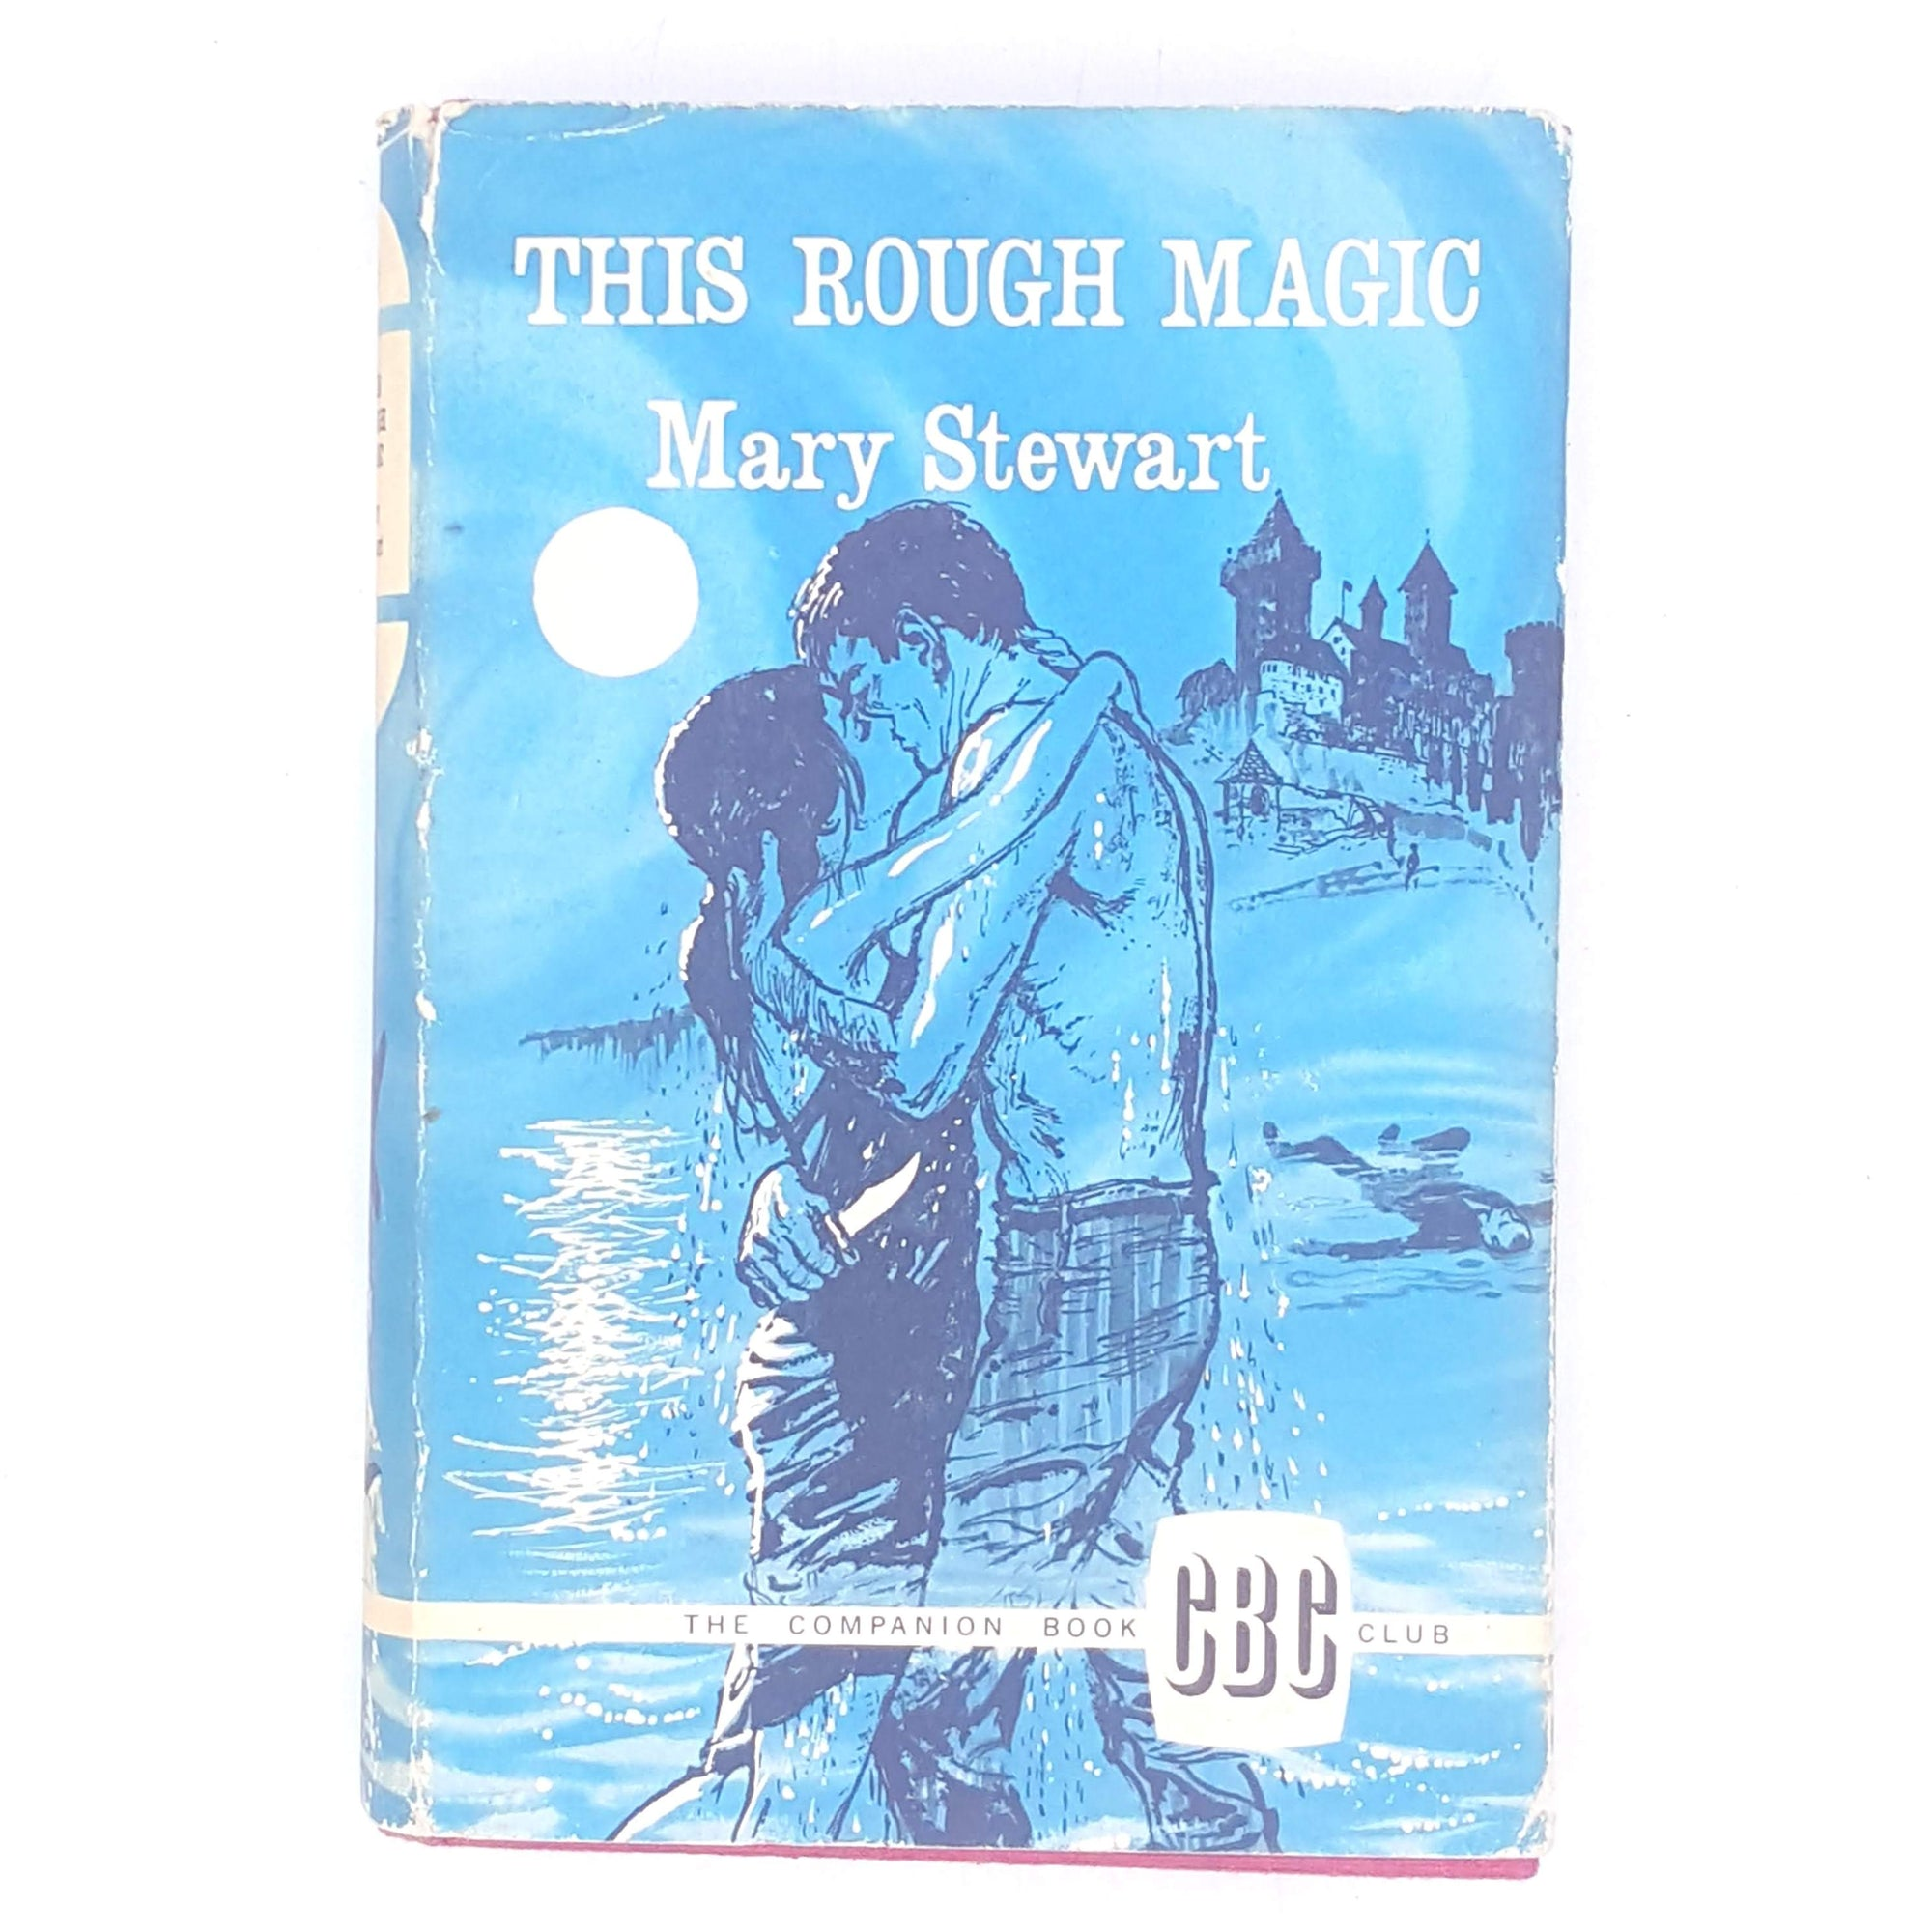 decorative-vintage-this-rough-magic-books-antique-patterned-thrift-blue-mary-stewart-country-house-library-old-